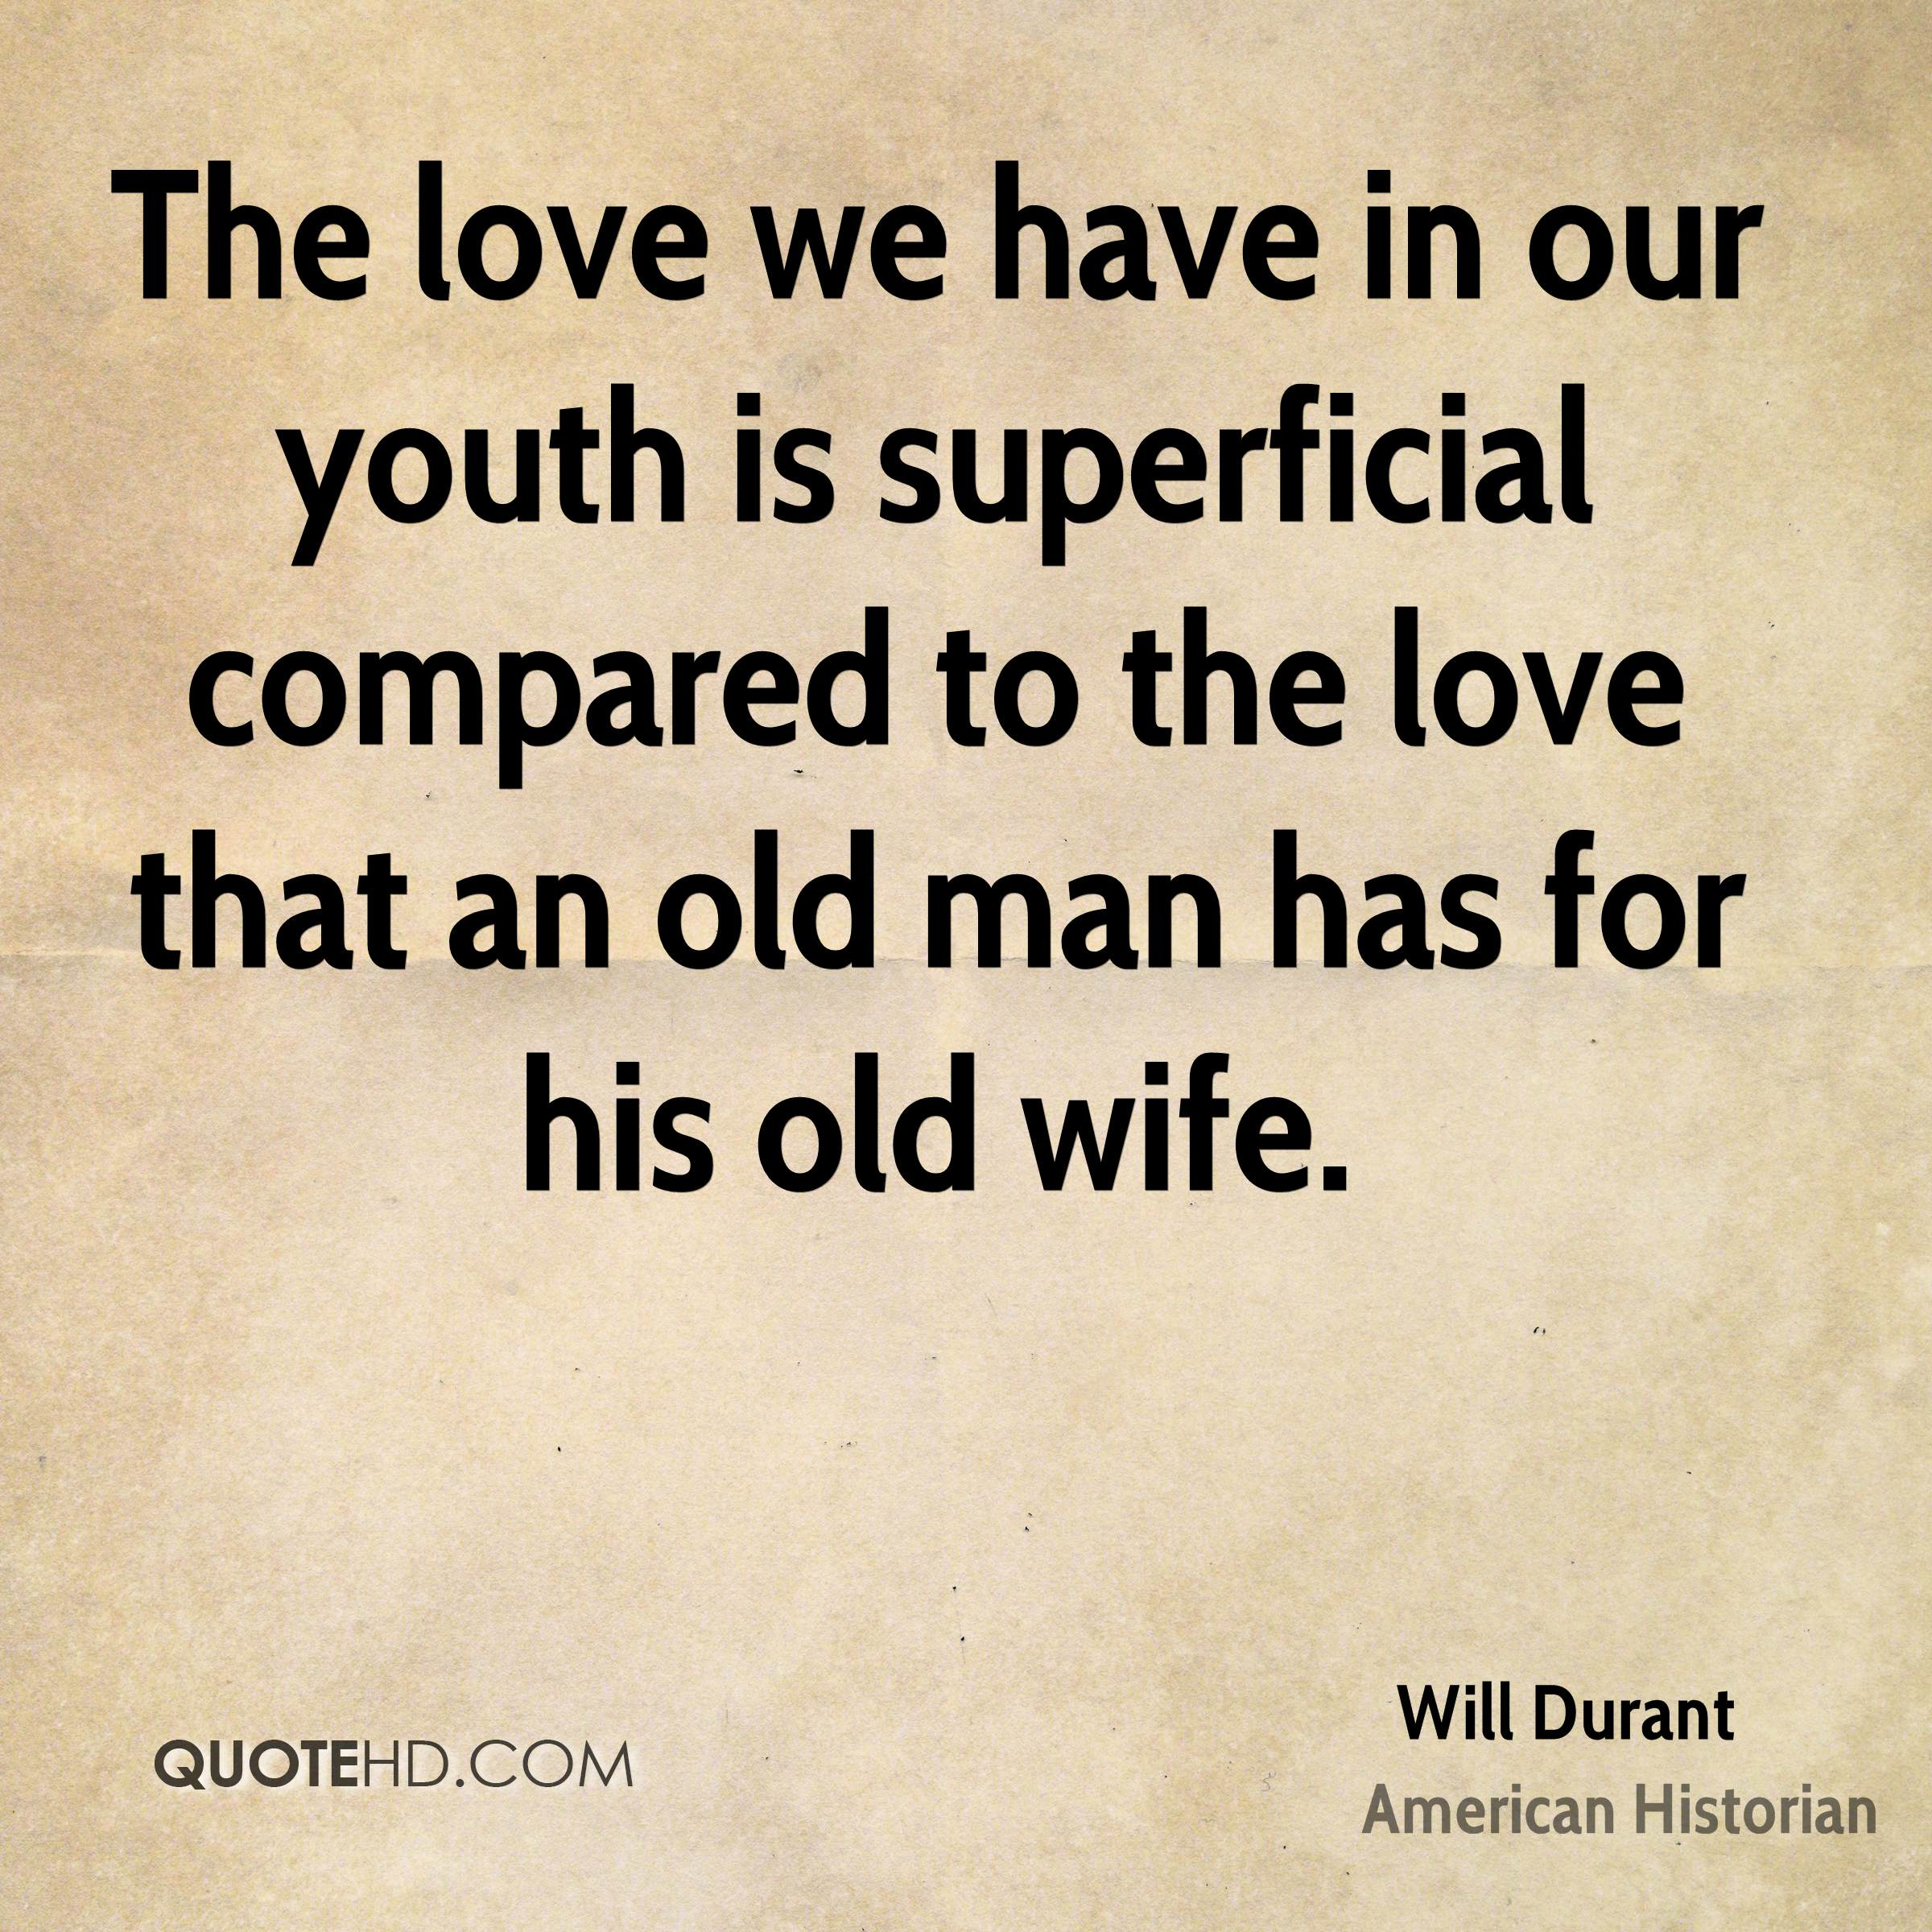 The love we have in our youth is superficial compared to the love that an old man has for his old wife.